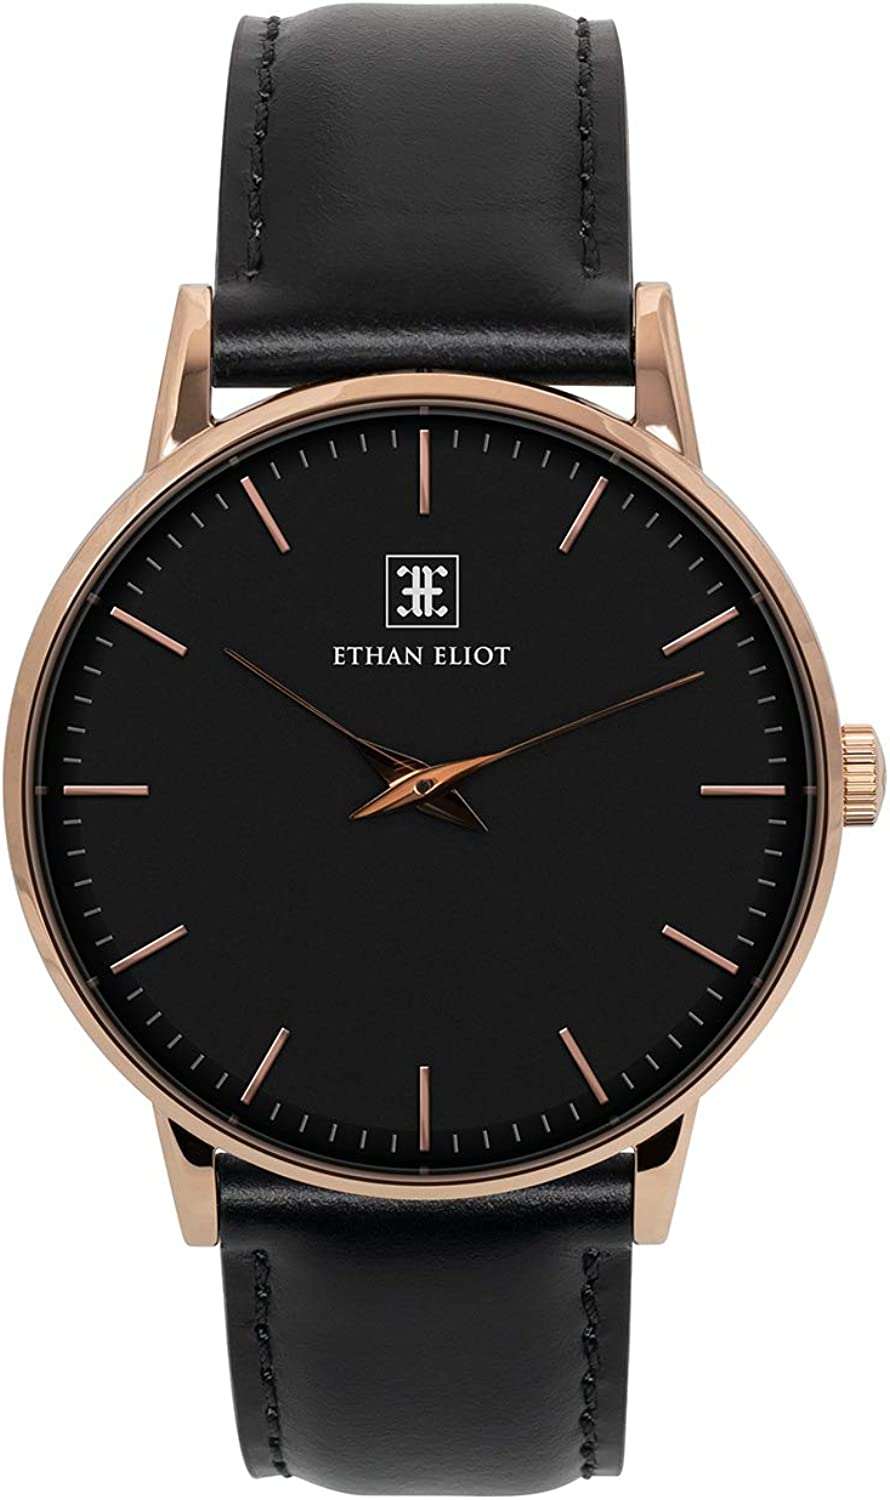 Ethan Eliot Classic Minimalist Men's Watch, Charleston 40mm Rose Gold Watch for Men, Black Face & Leather Band, 5ATM Watch